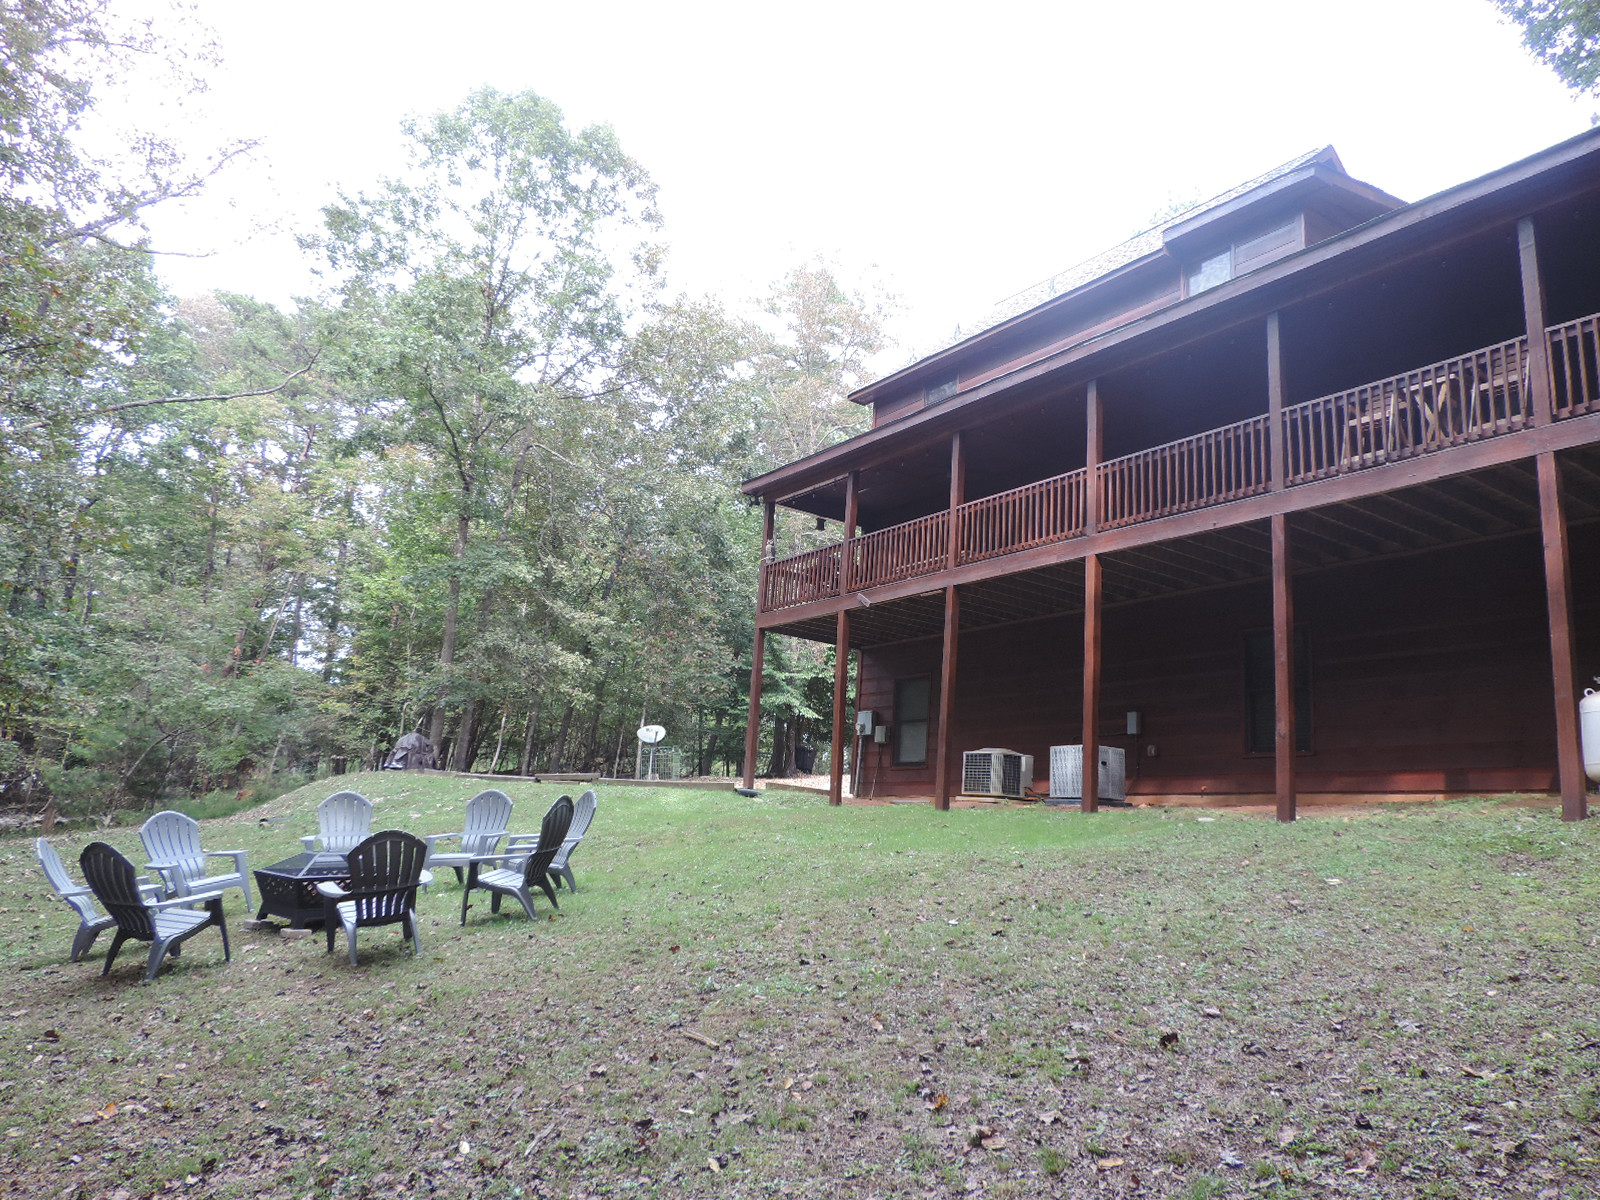 Floor Plan for NEW LISTING: BLISSFUL BEAR RETREAT - 4 Bedrooms 3 Baths with Gas Fireplace, Wi-Fi, BBQ Gas Grill, Fire Pit, Wrap Around Porch on Large a Private Lot.